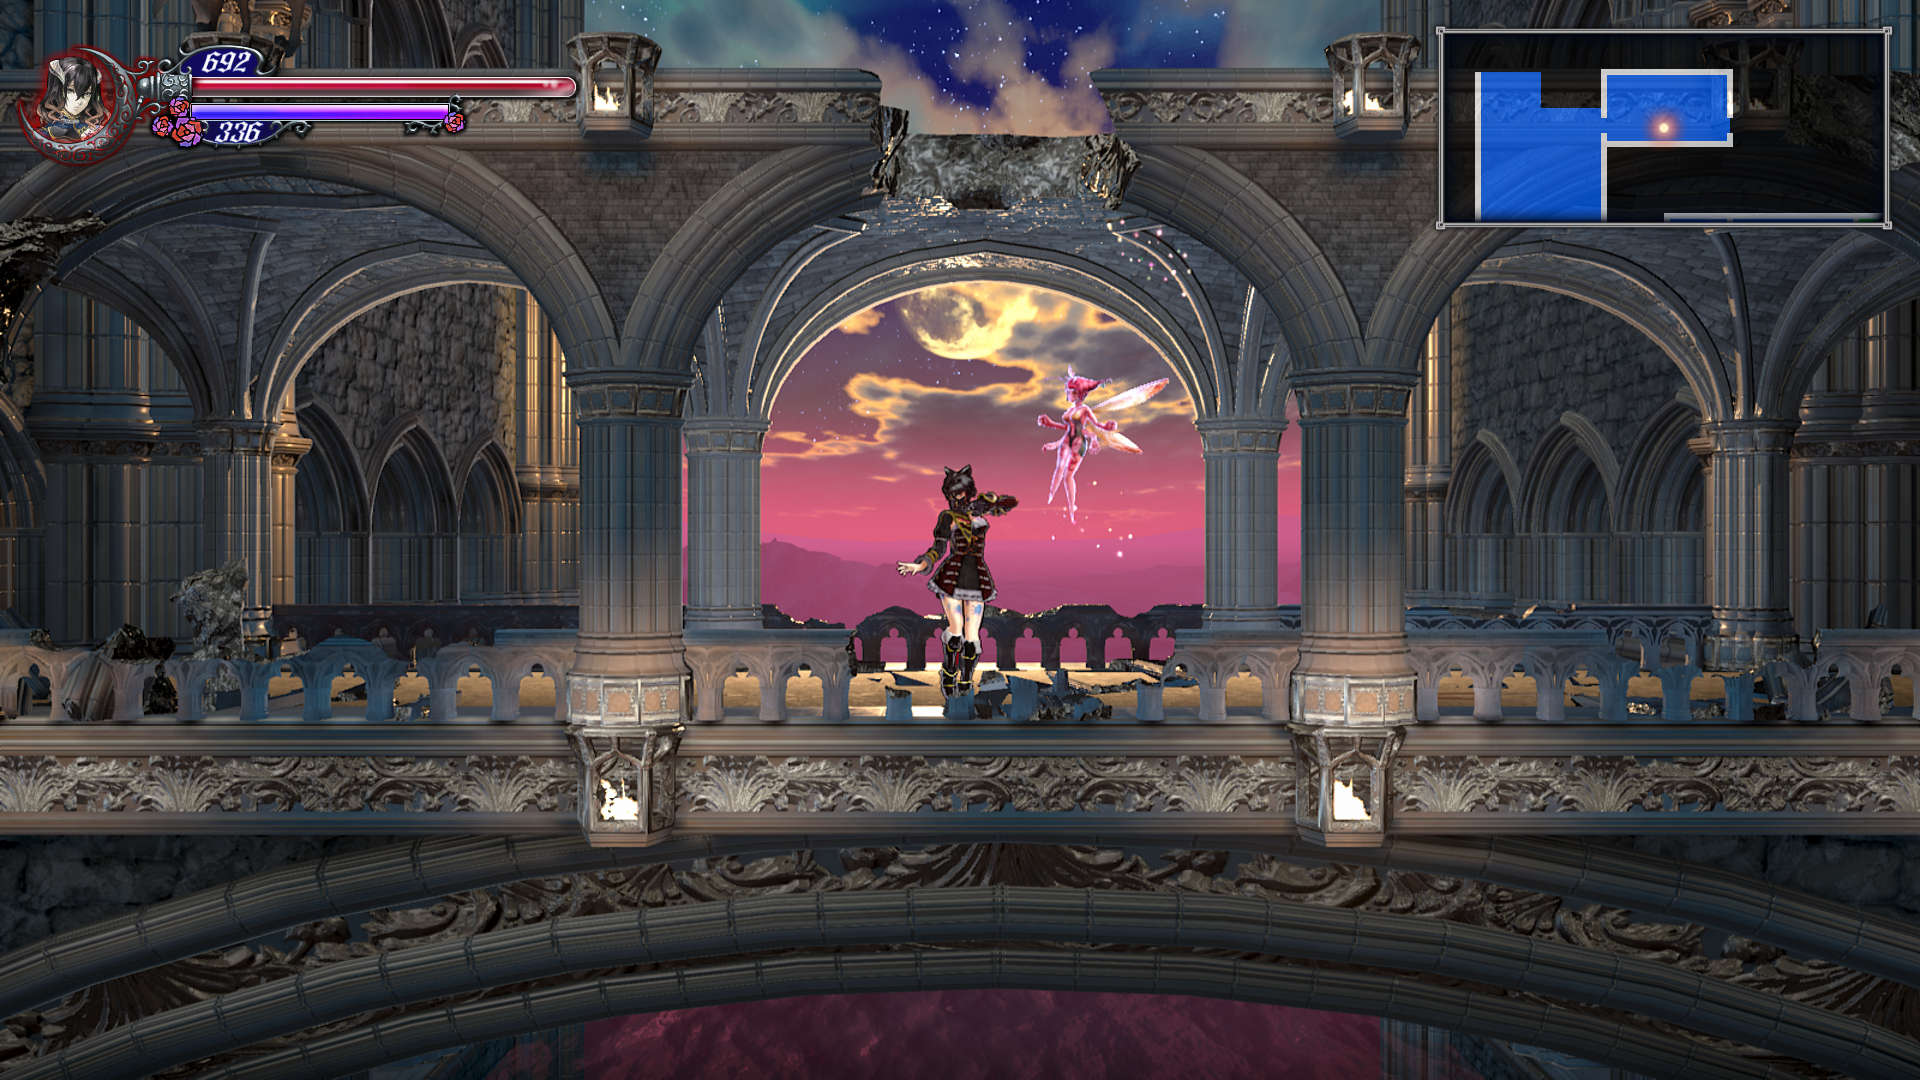 Symphony of the Night throw-back.